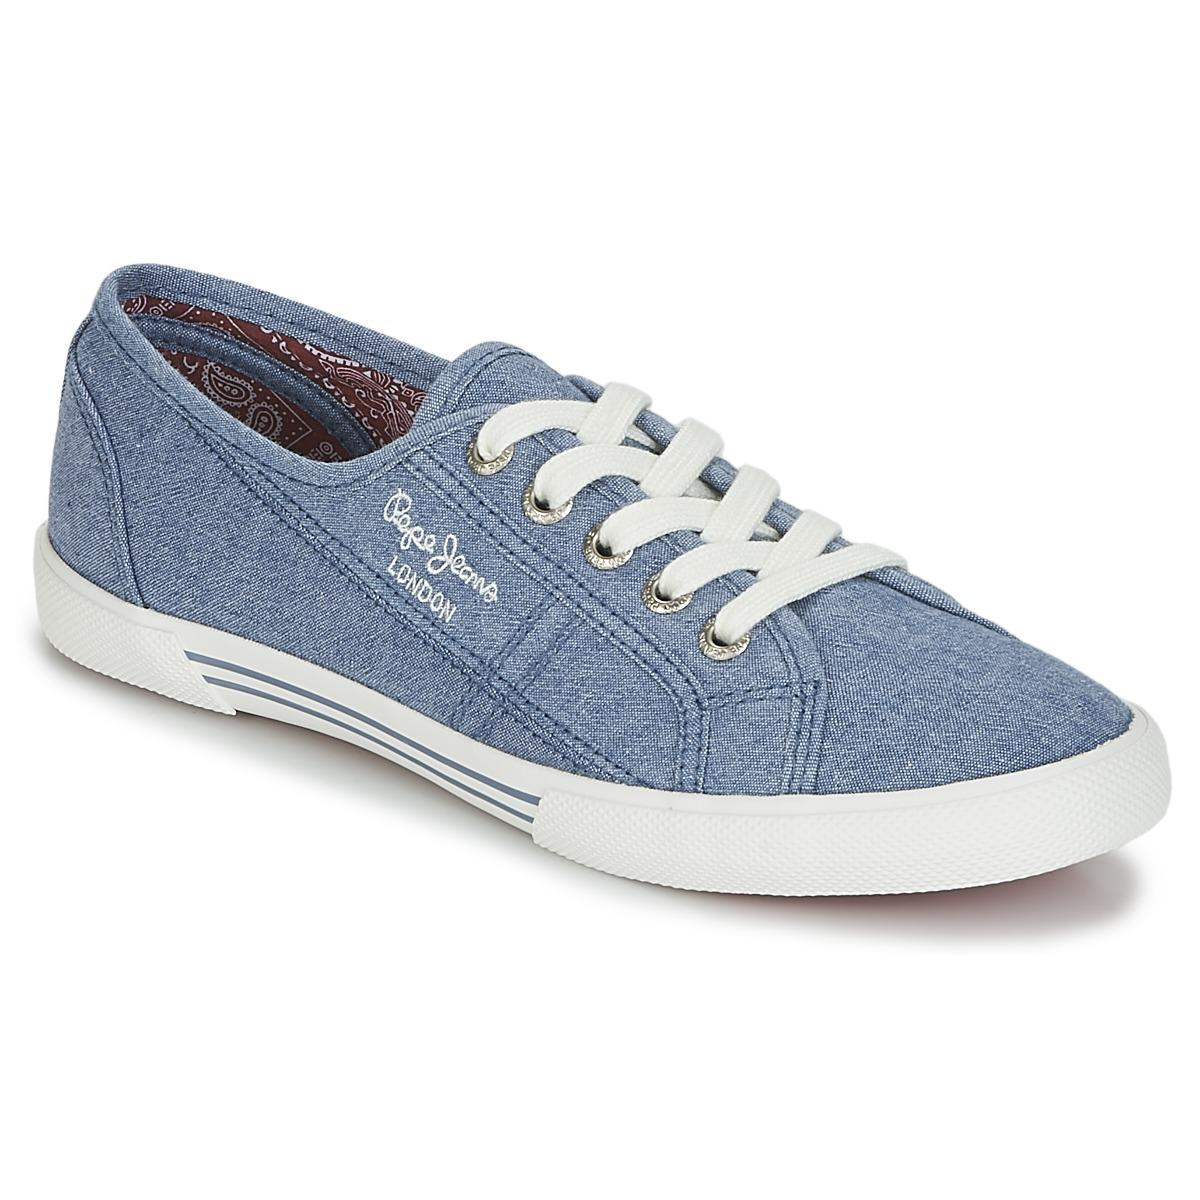 Womens Aberlady Eighty Trainers Pepe Jeans London afbDwAXlcV